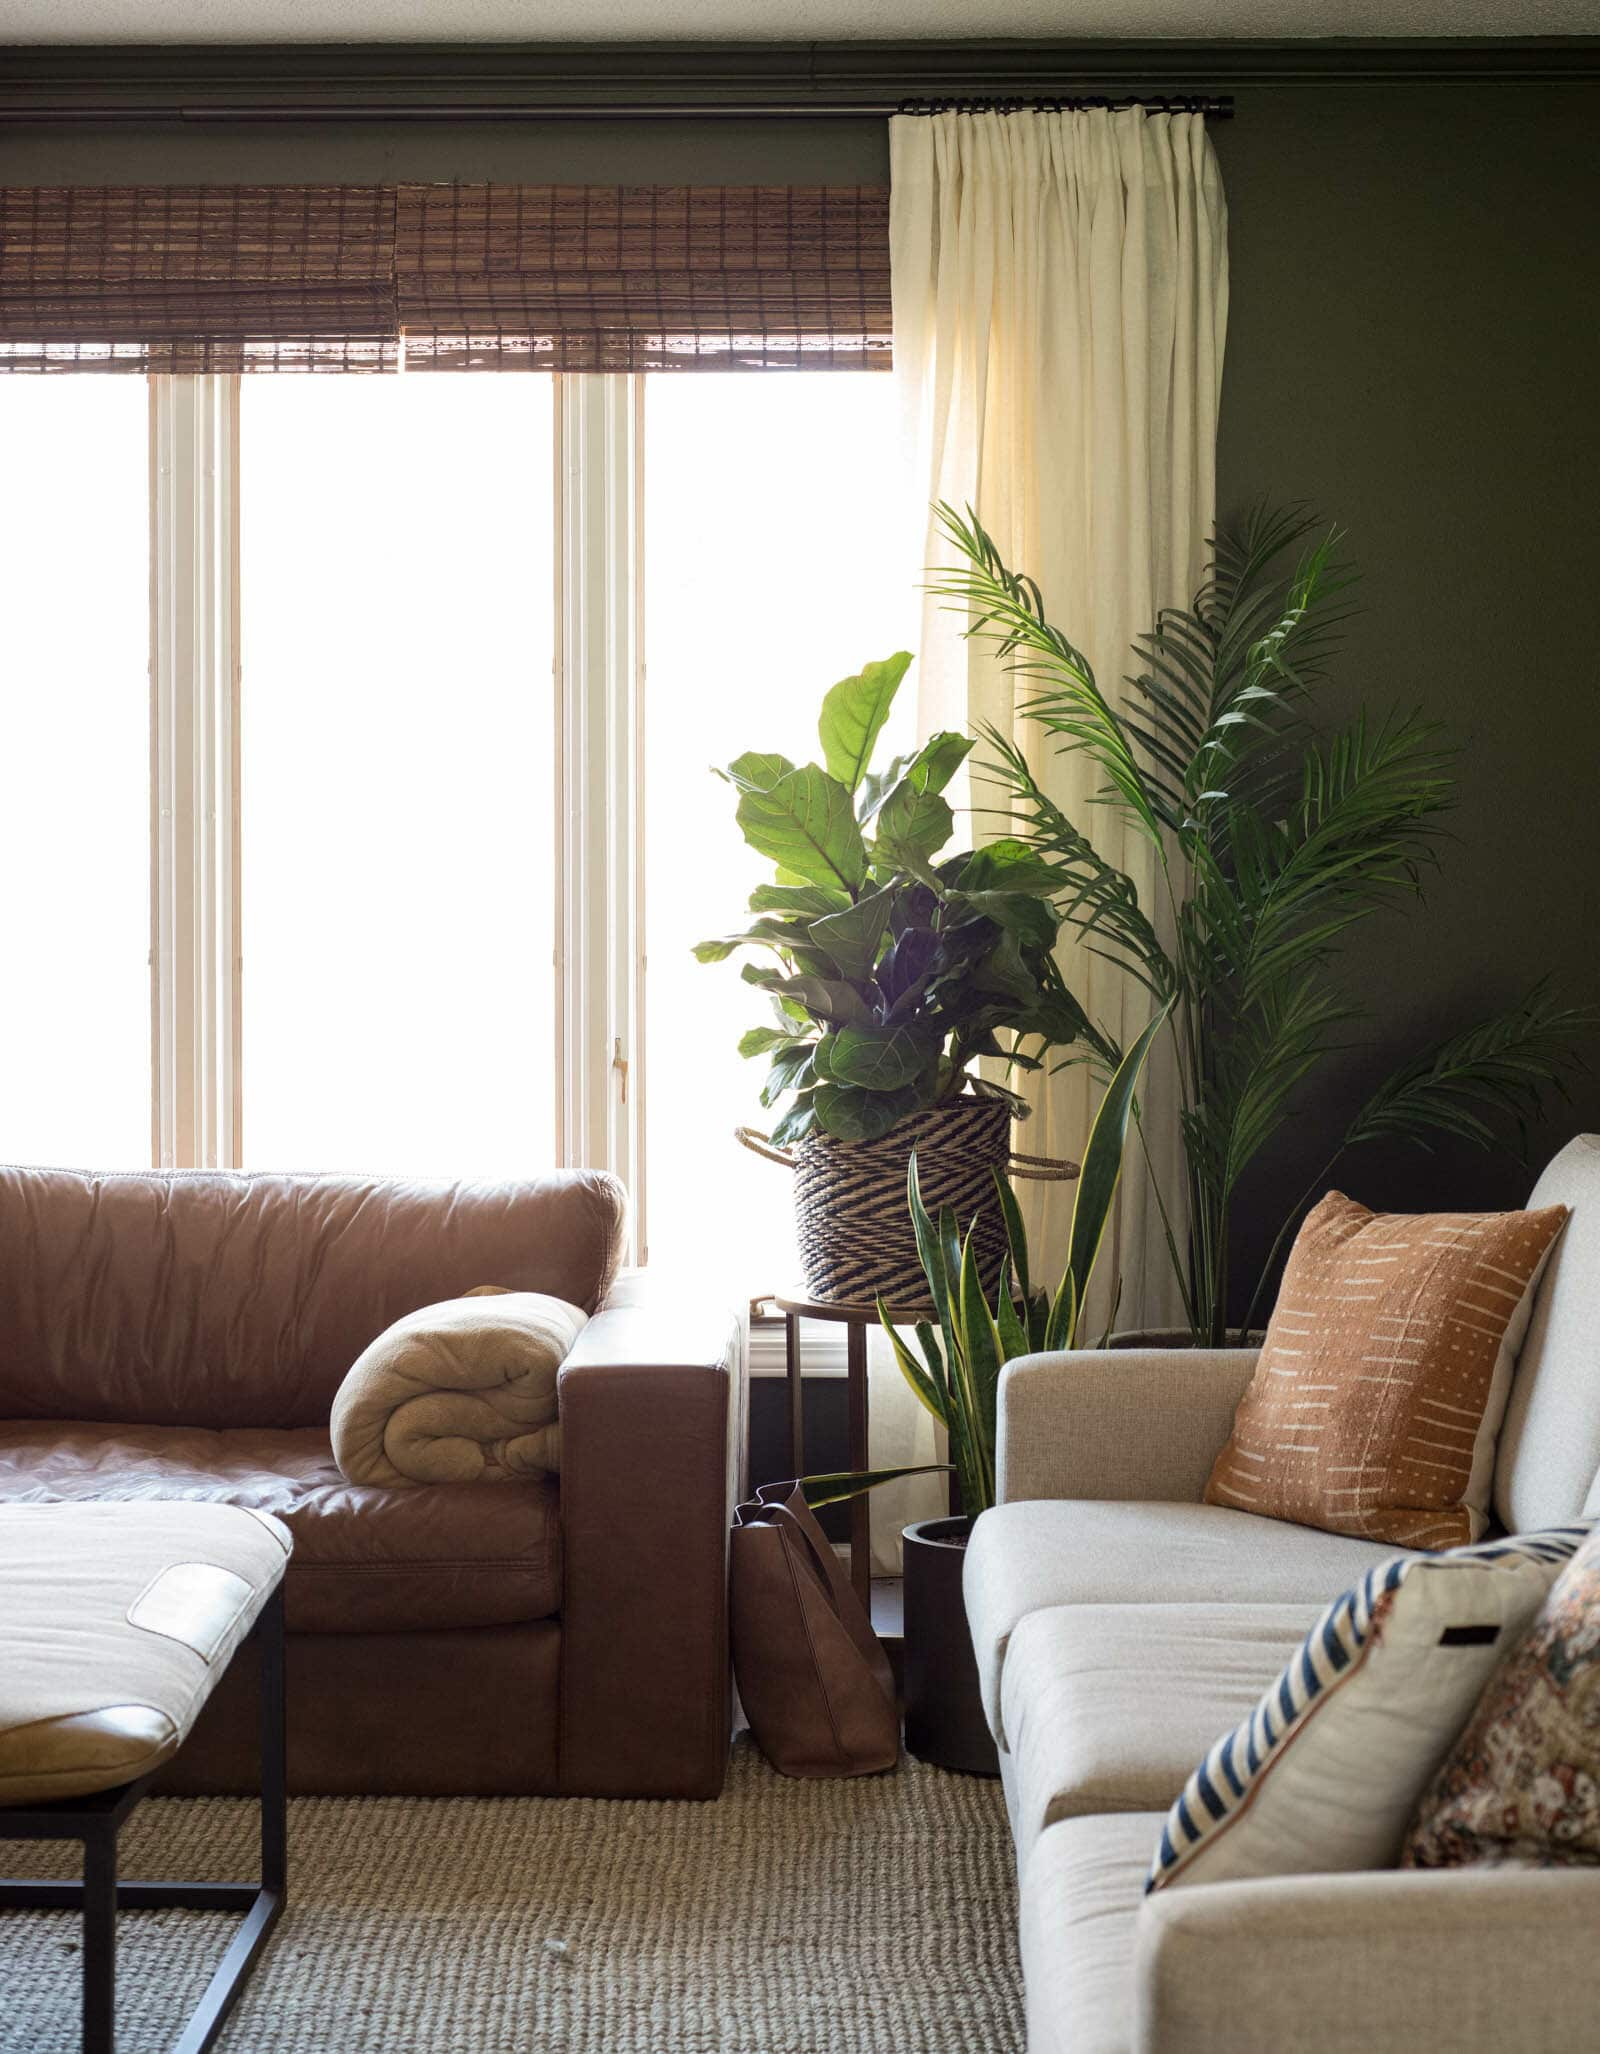 Bamboo blinds on window with white curtains over